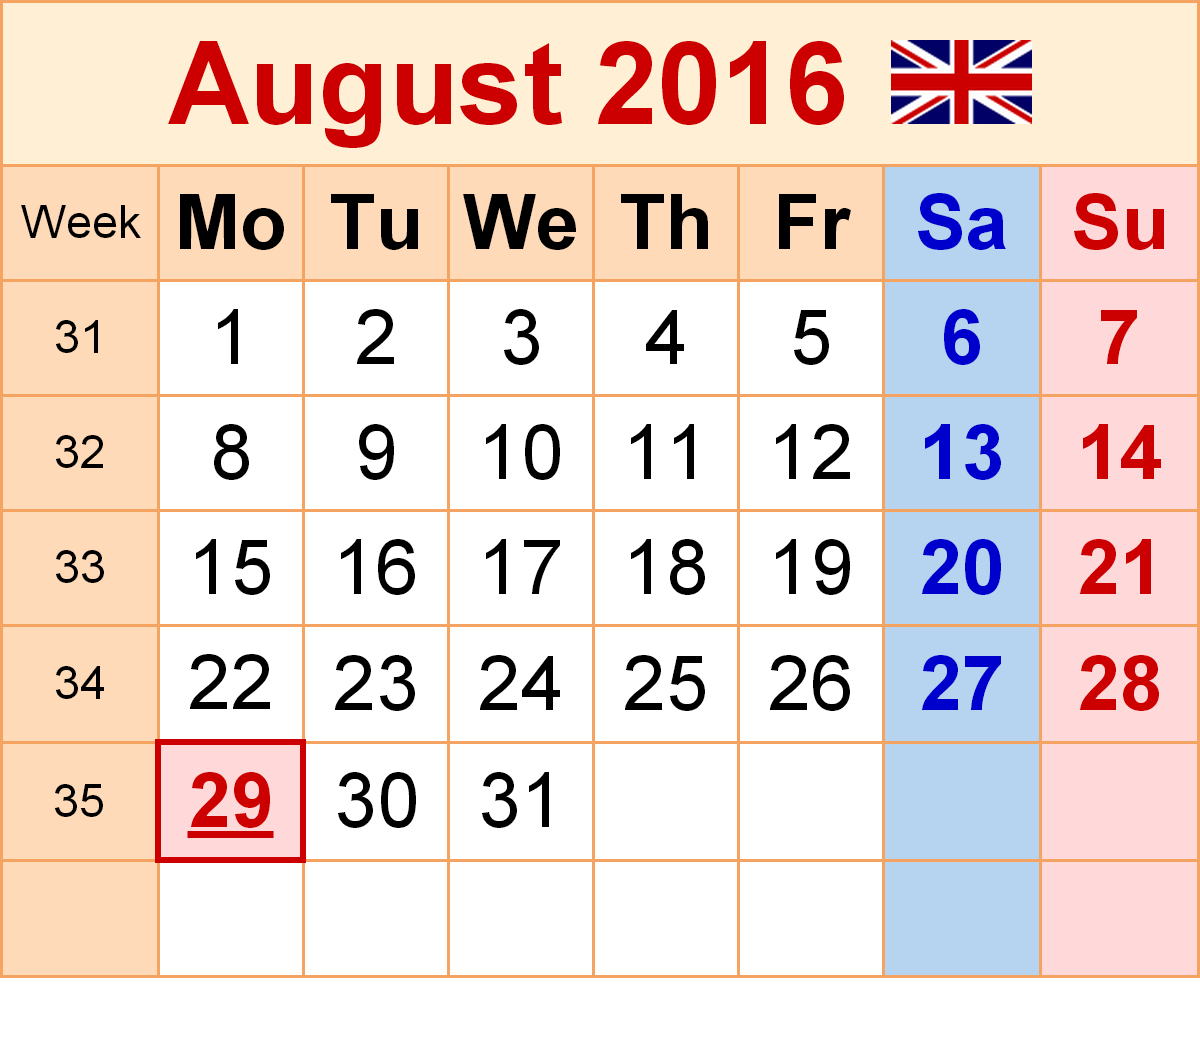 August Calendar Template 2016 from 3.bp.blogspot.com